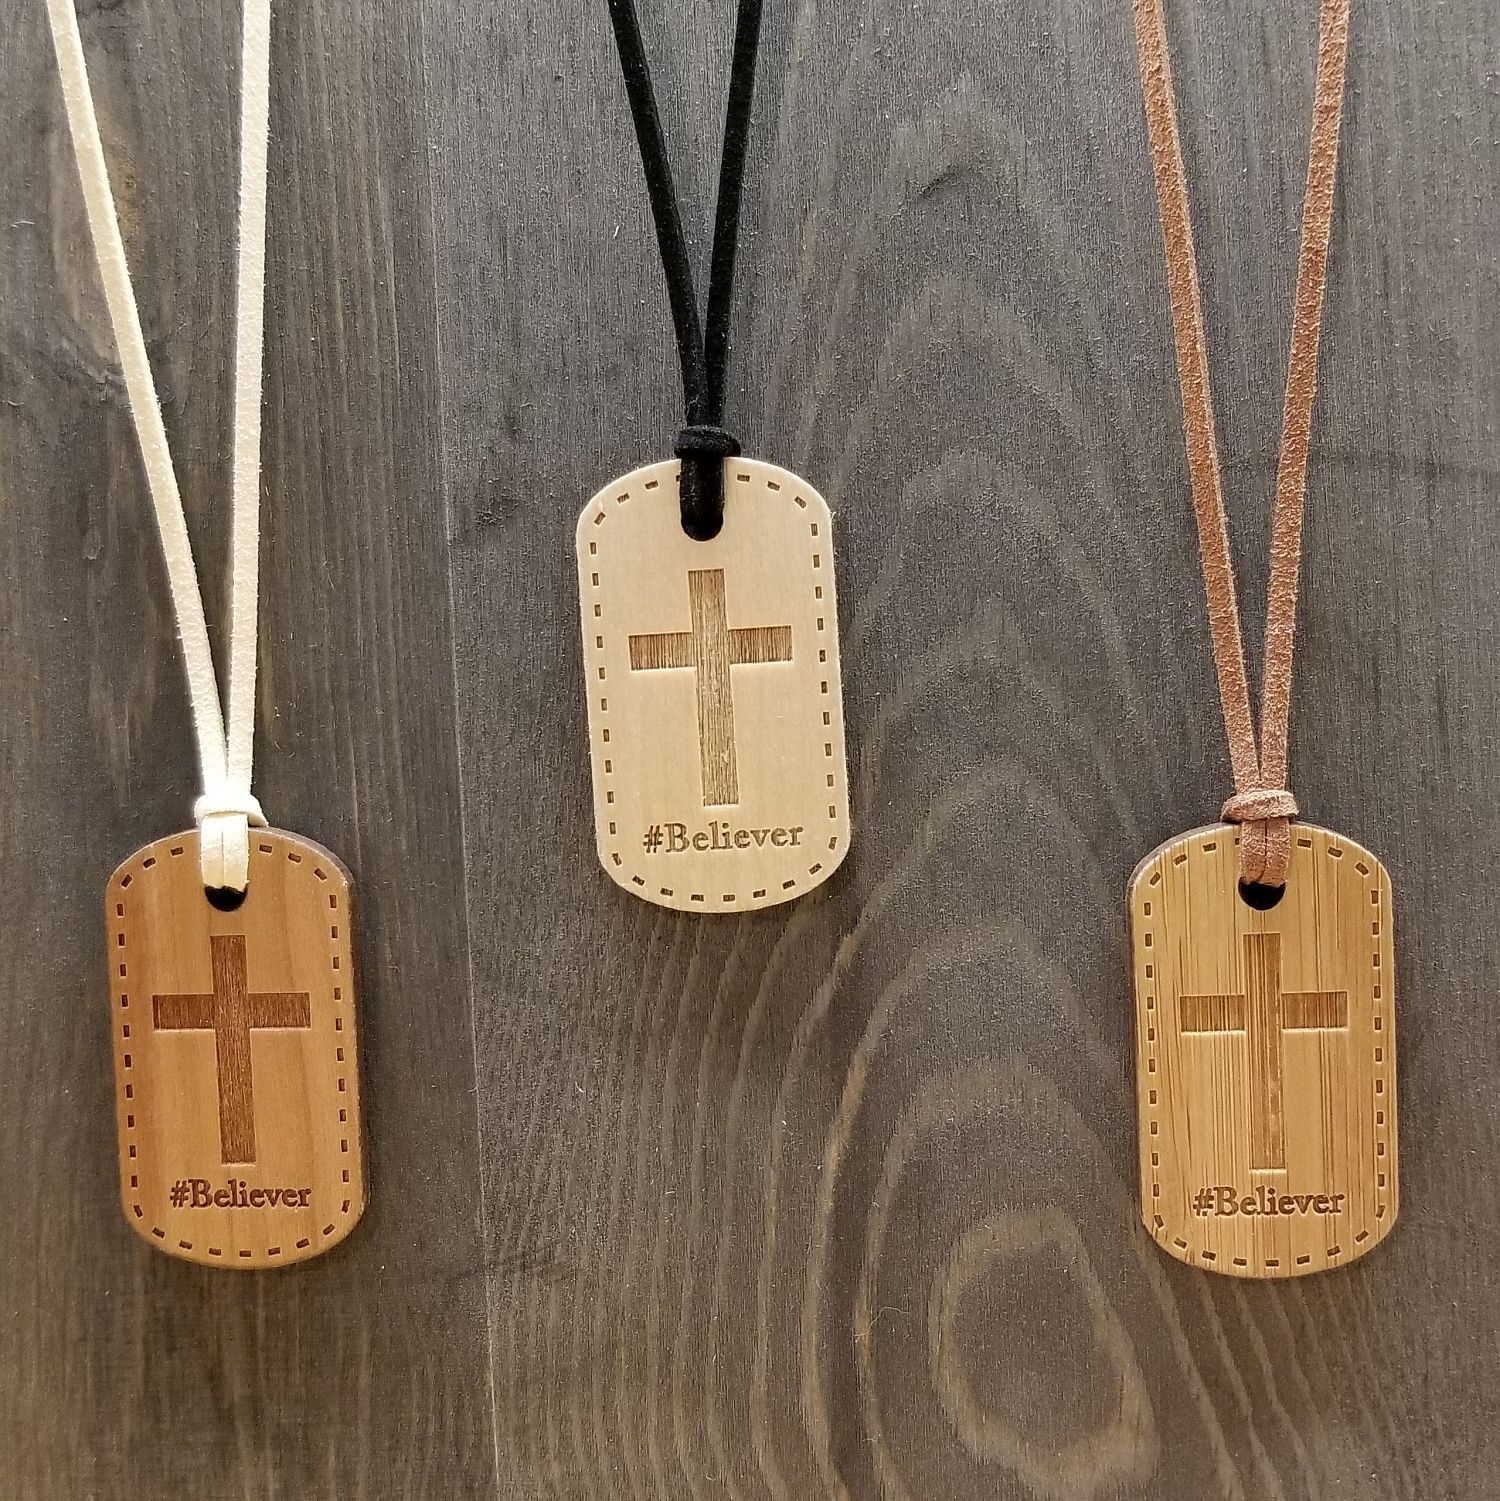 Believer Hash Tag Pendant Necklace- 3 Versions